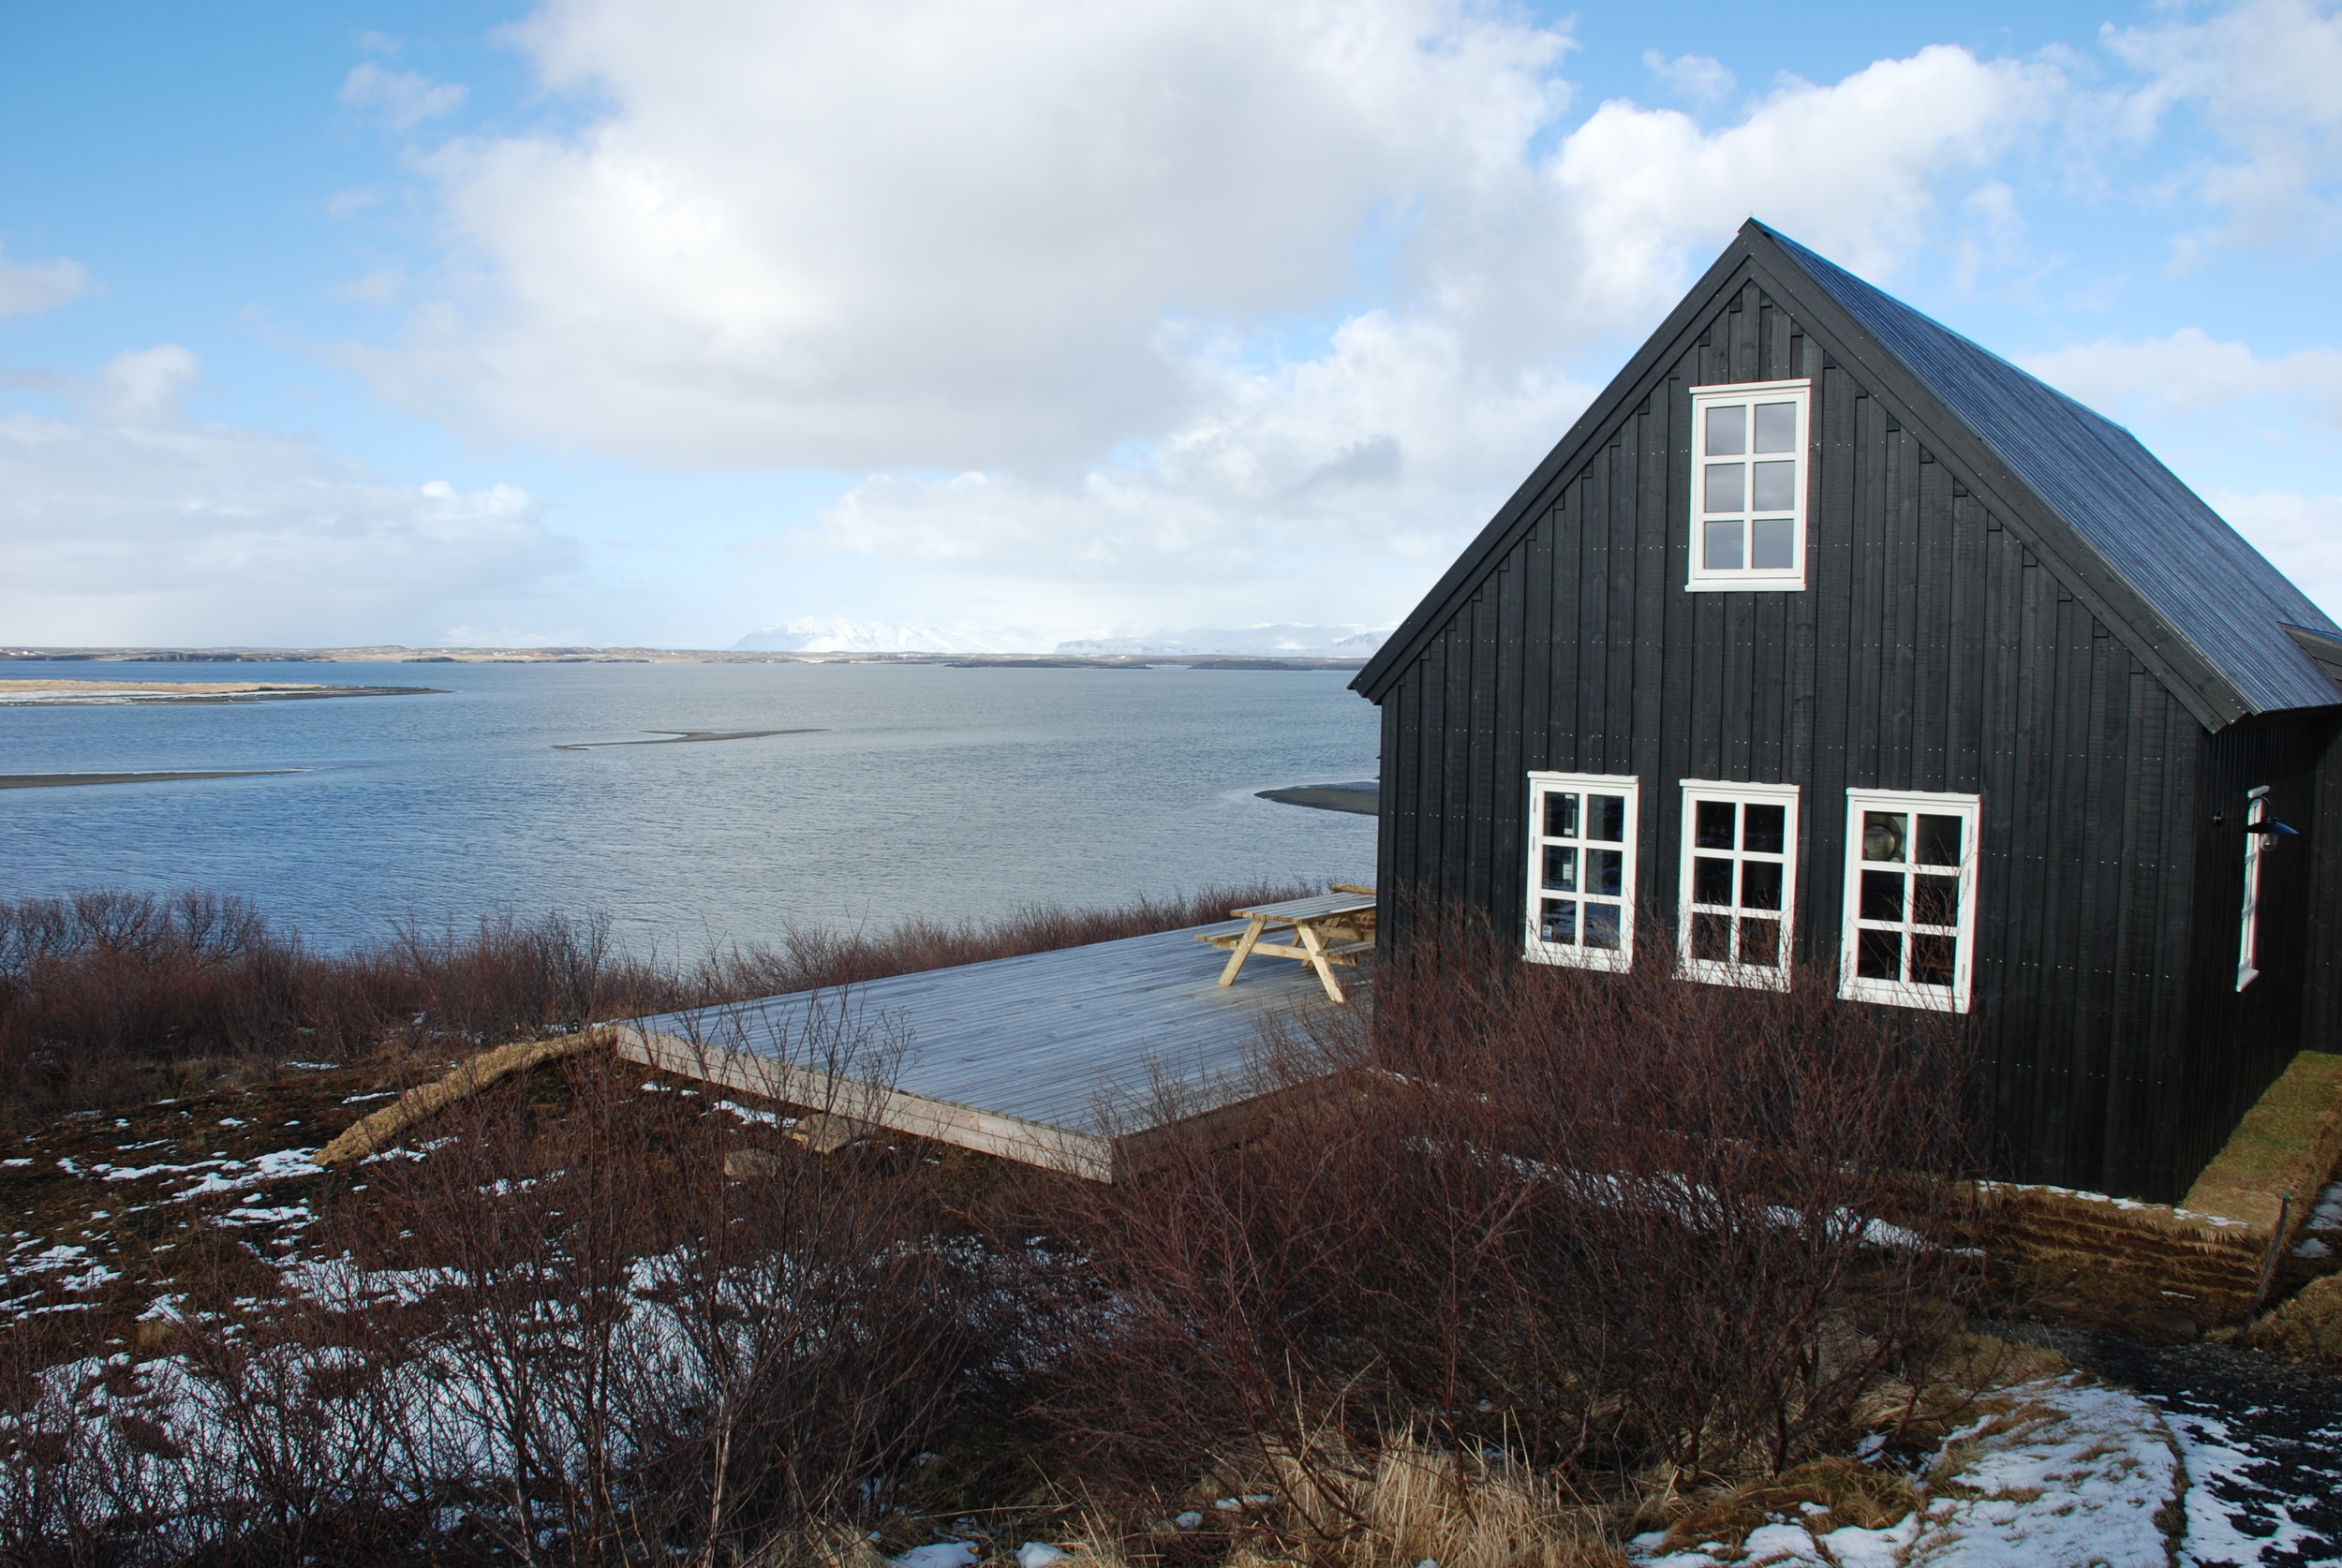 After spending the first night in Reykjavik, we drove a few hours to our little Black House where we would stay for the next five nights. The dark cabin sits between the Atlantic Ocean and a once-fiery-now-dormant volcano covered in snow.